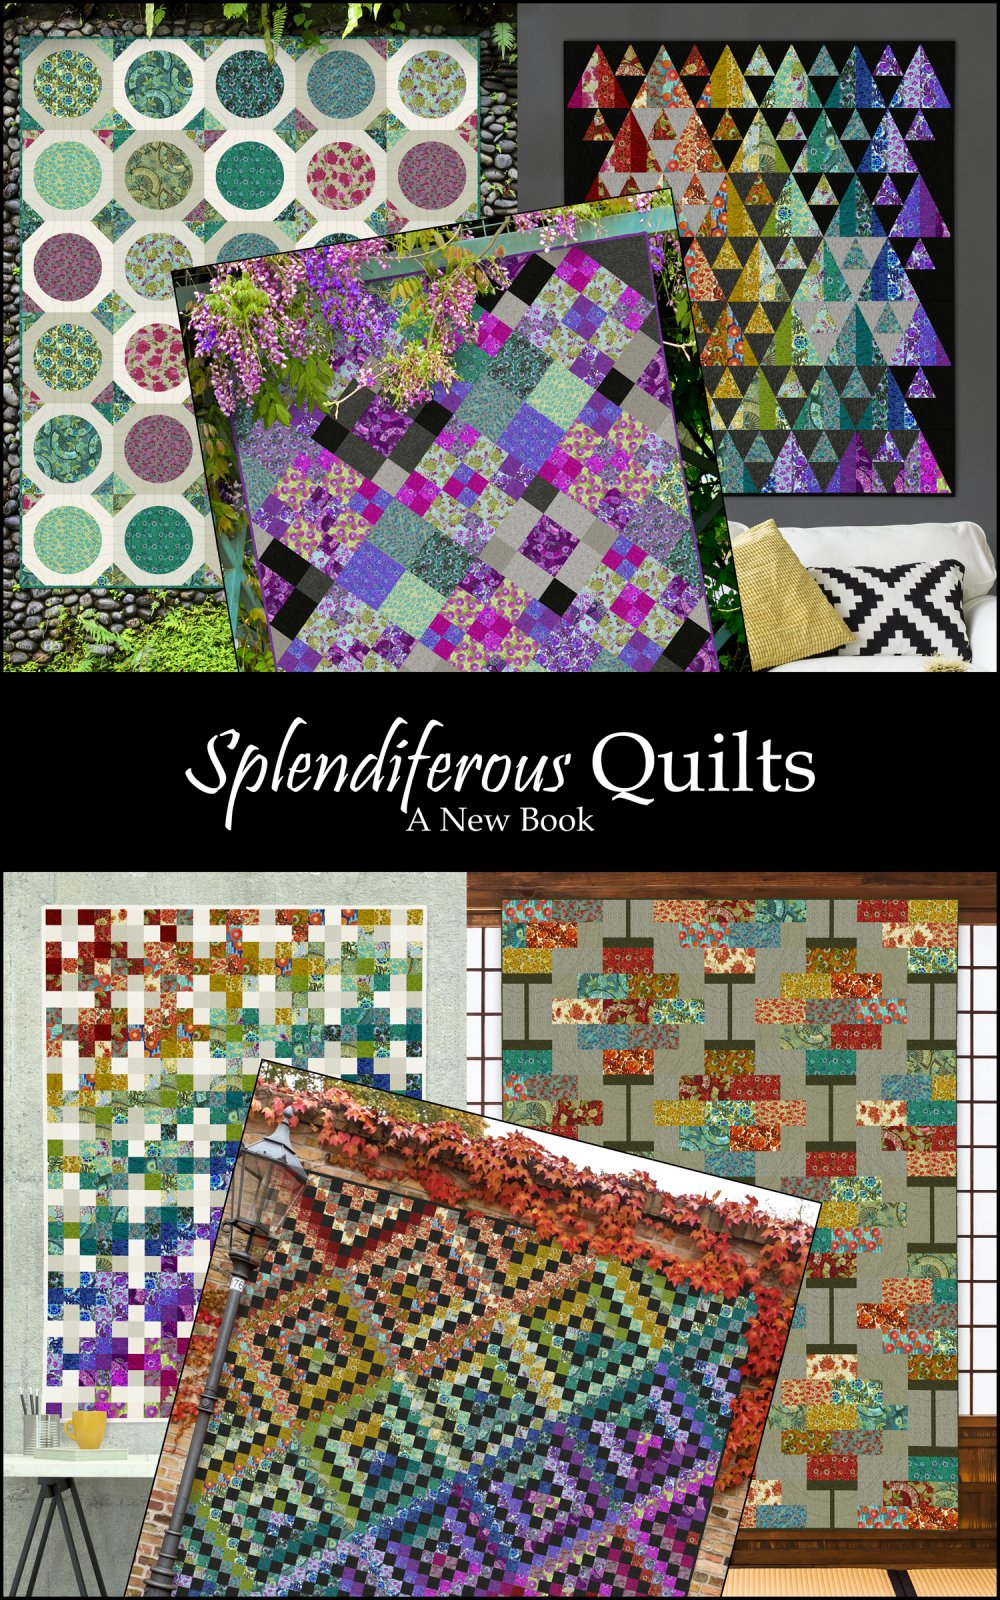 kristin quilt simple sunnyside quilts collections eighth friendly fat beginners etsy husky quarter easy serengeti quick pattern patterns blandford